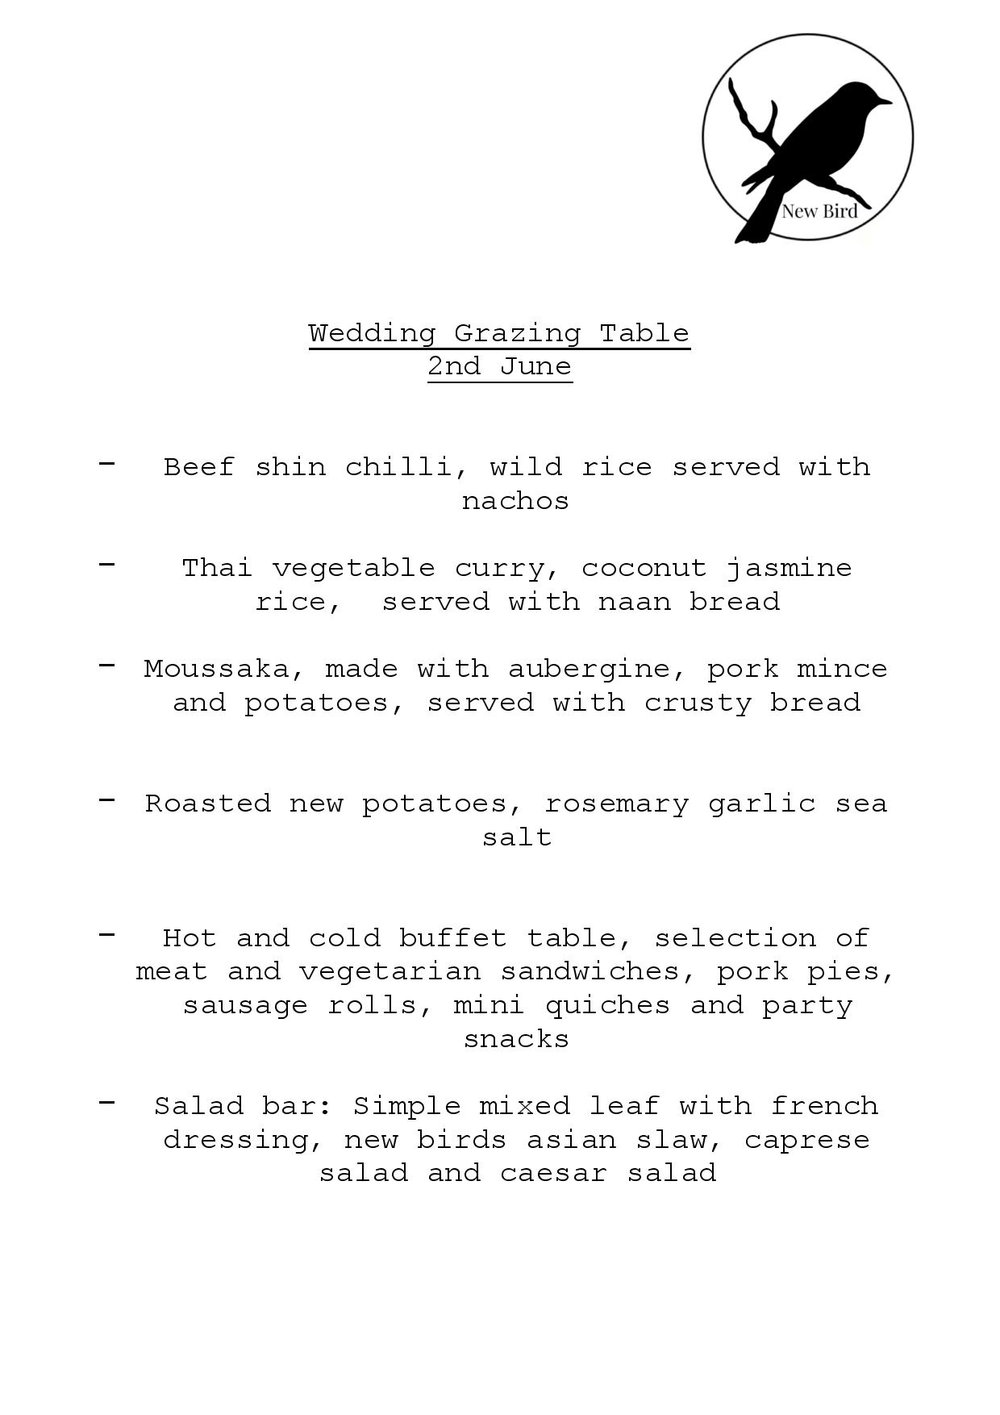 Chris & Borna_ Grazing Table Options_ 2nd June 2018-page-001.jpg